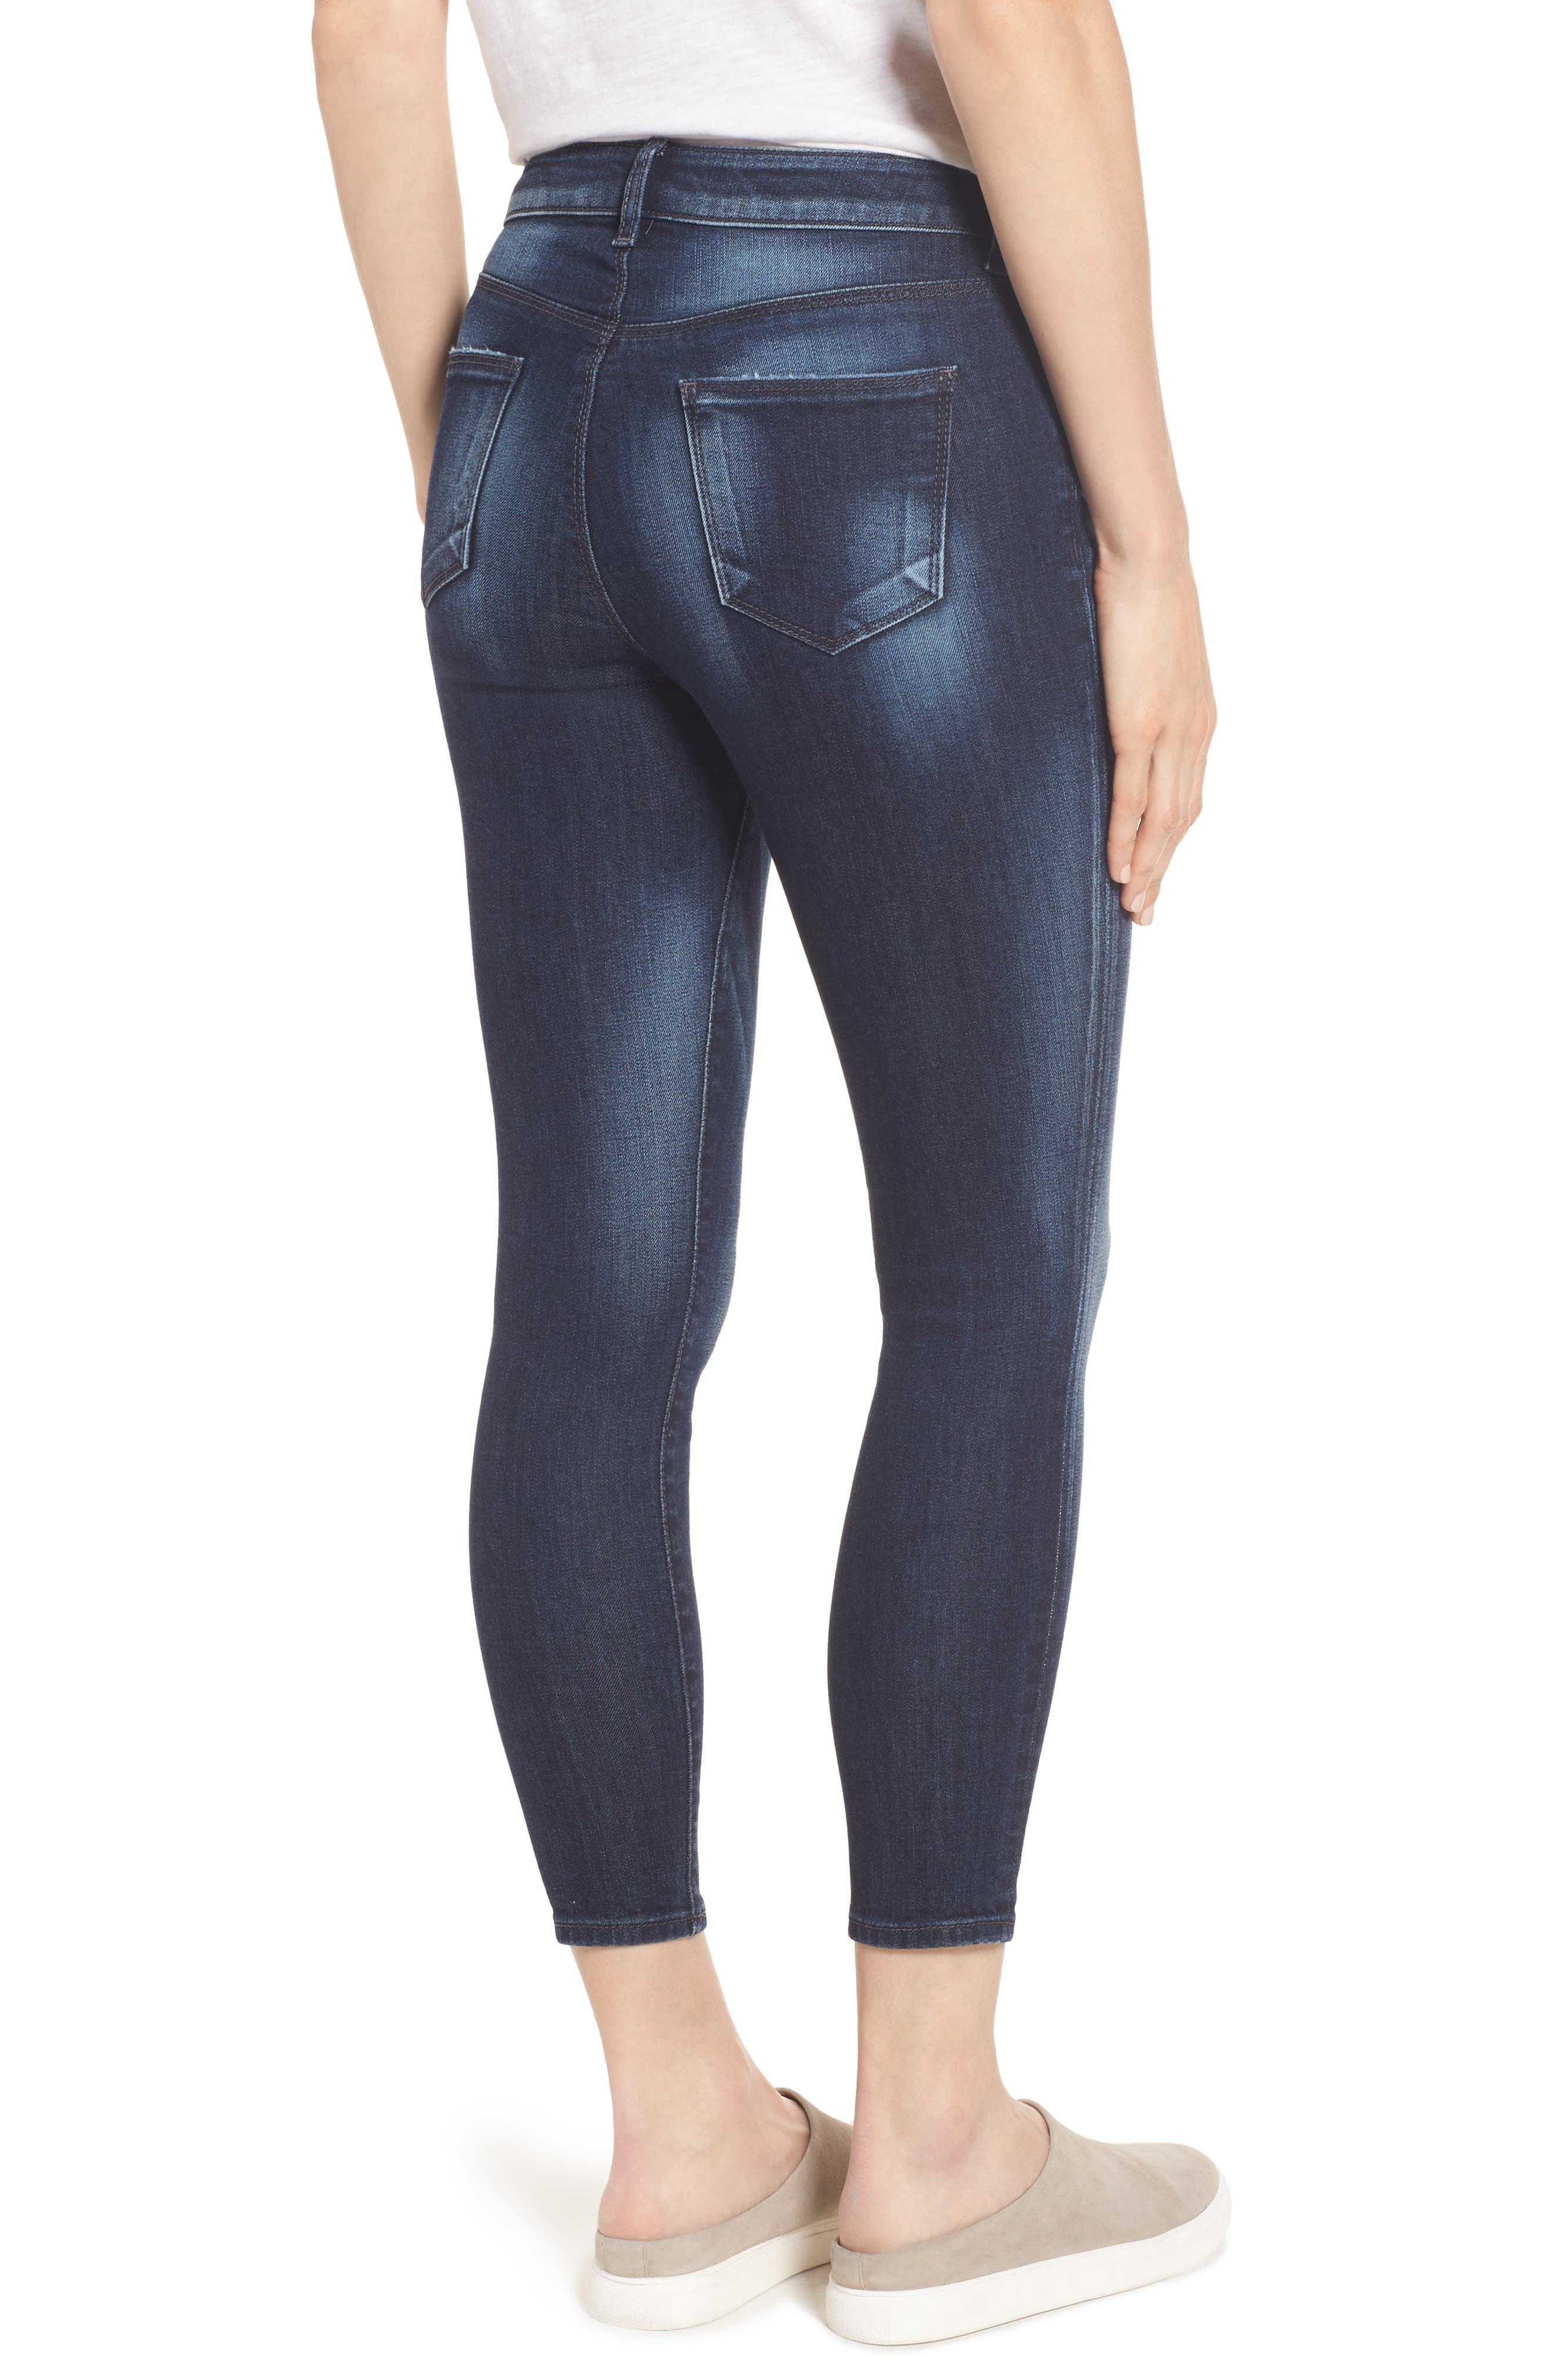 Diana Curvy Fit Crop Skinny Jeans,                             Alternate thumbnail 2, color,                             470